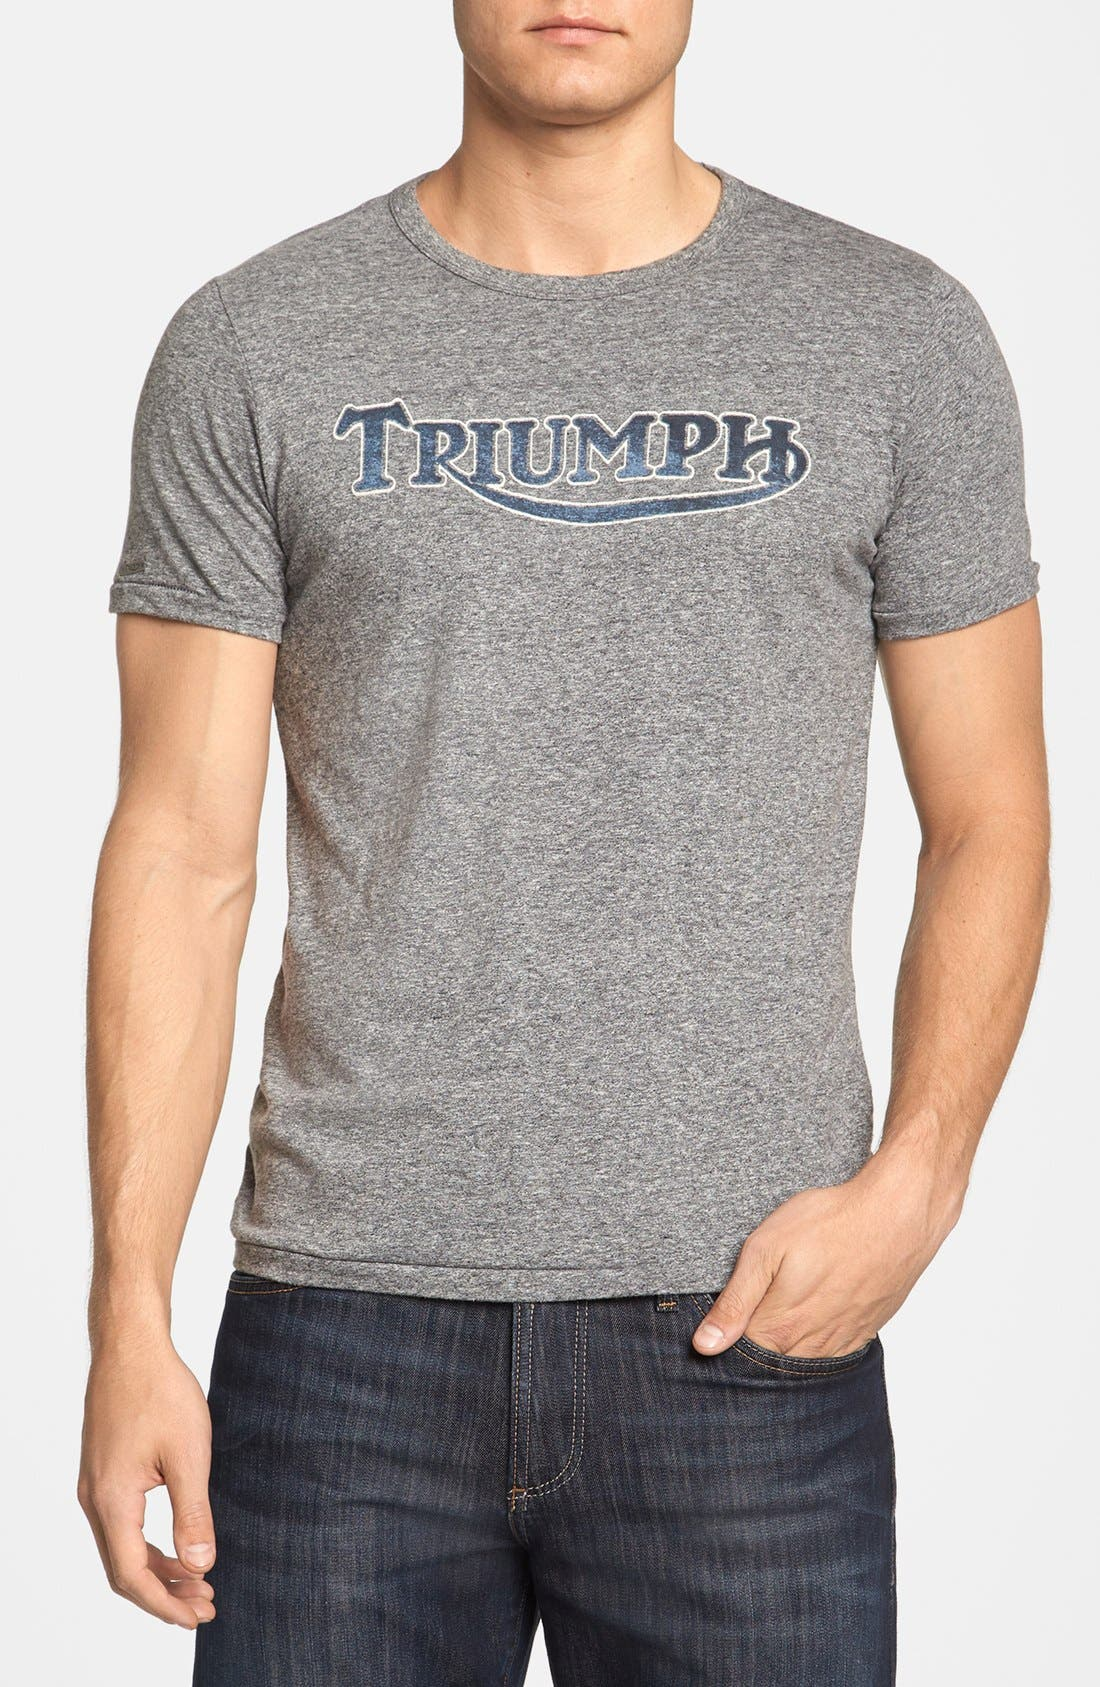 Alternate Image 1 Selected - Lucky Brand 'Triumph' T-Shirt